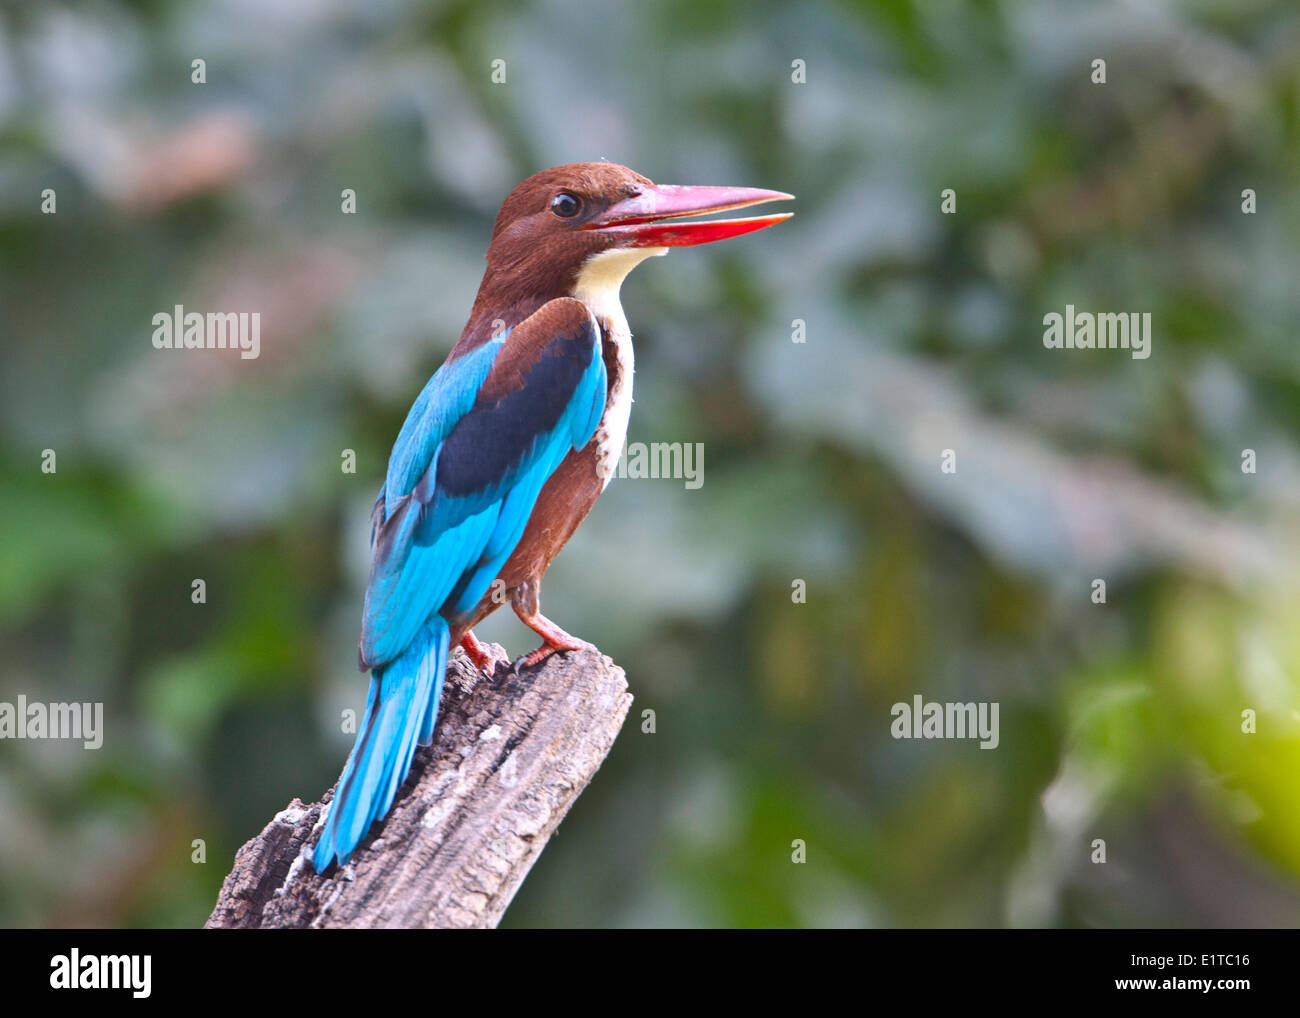 Portrait of White-throated (White-breasted) Kingfisher - Stock Image